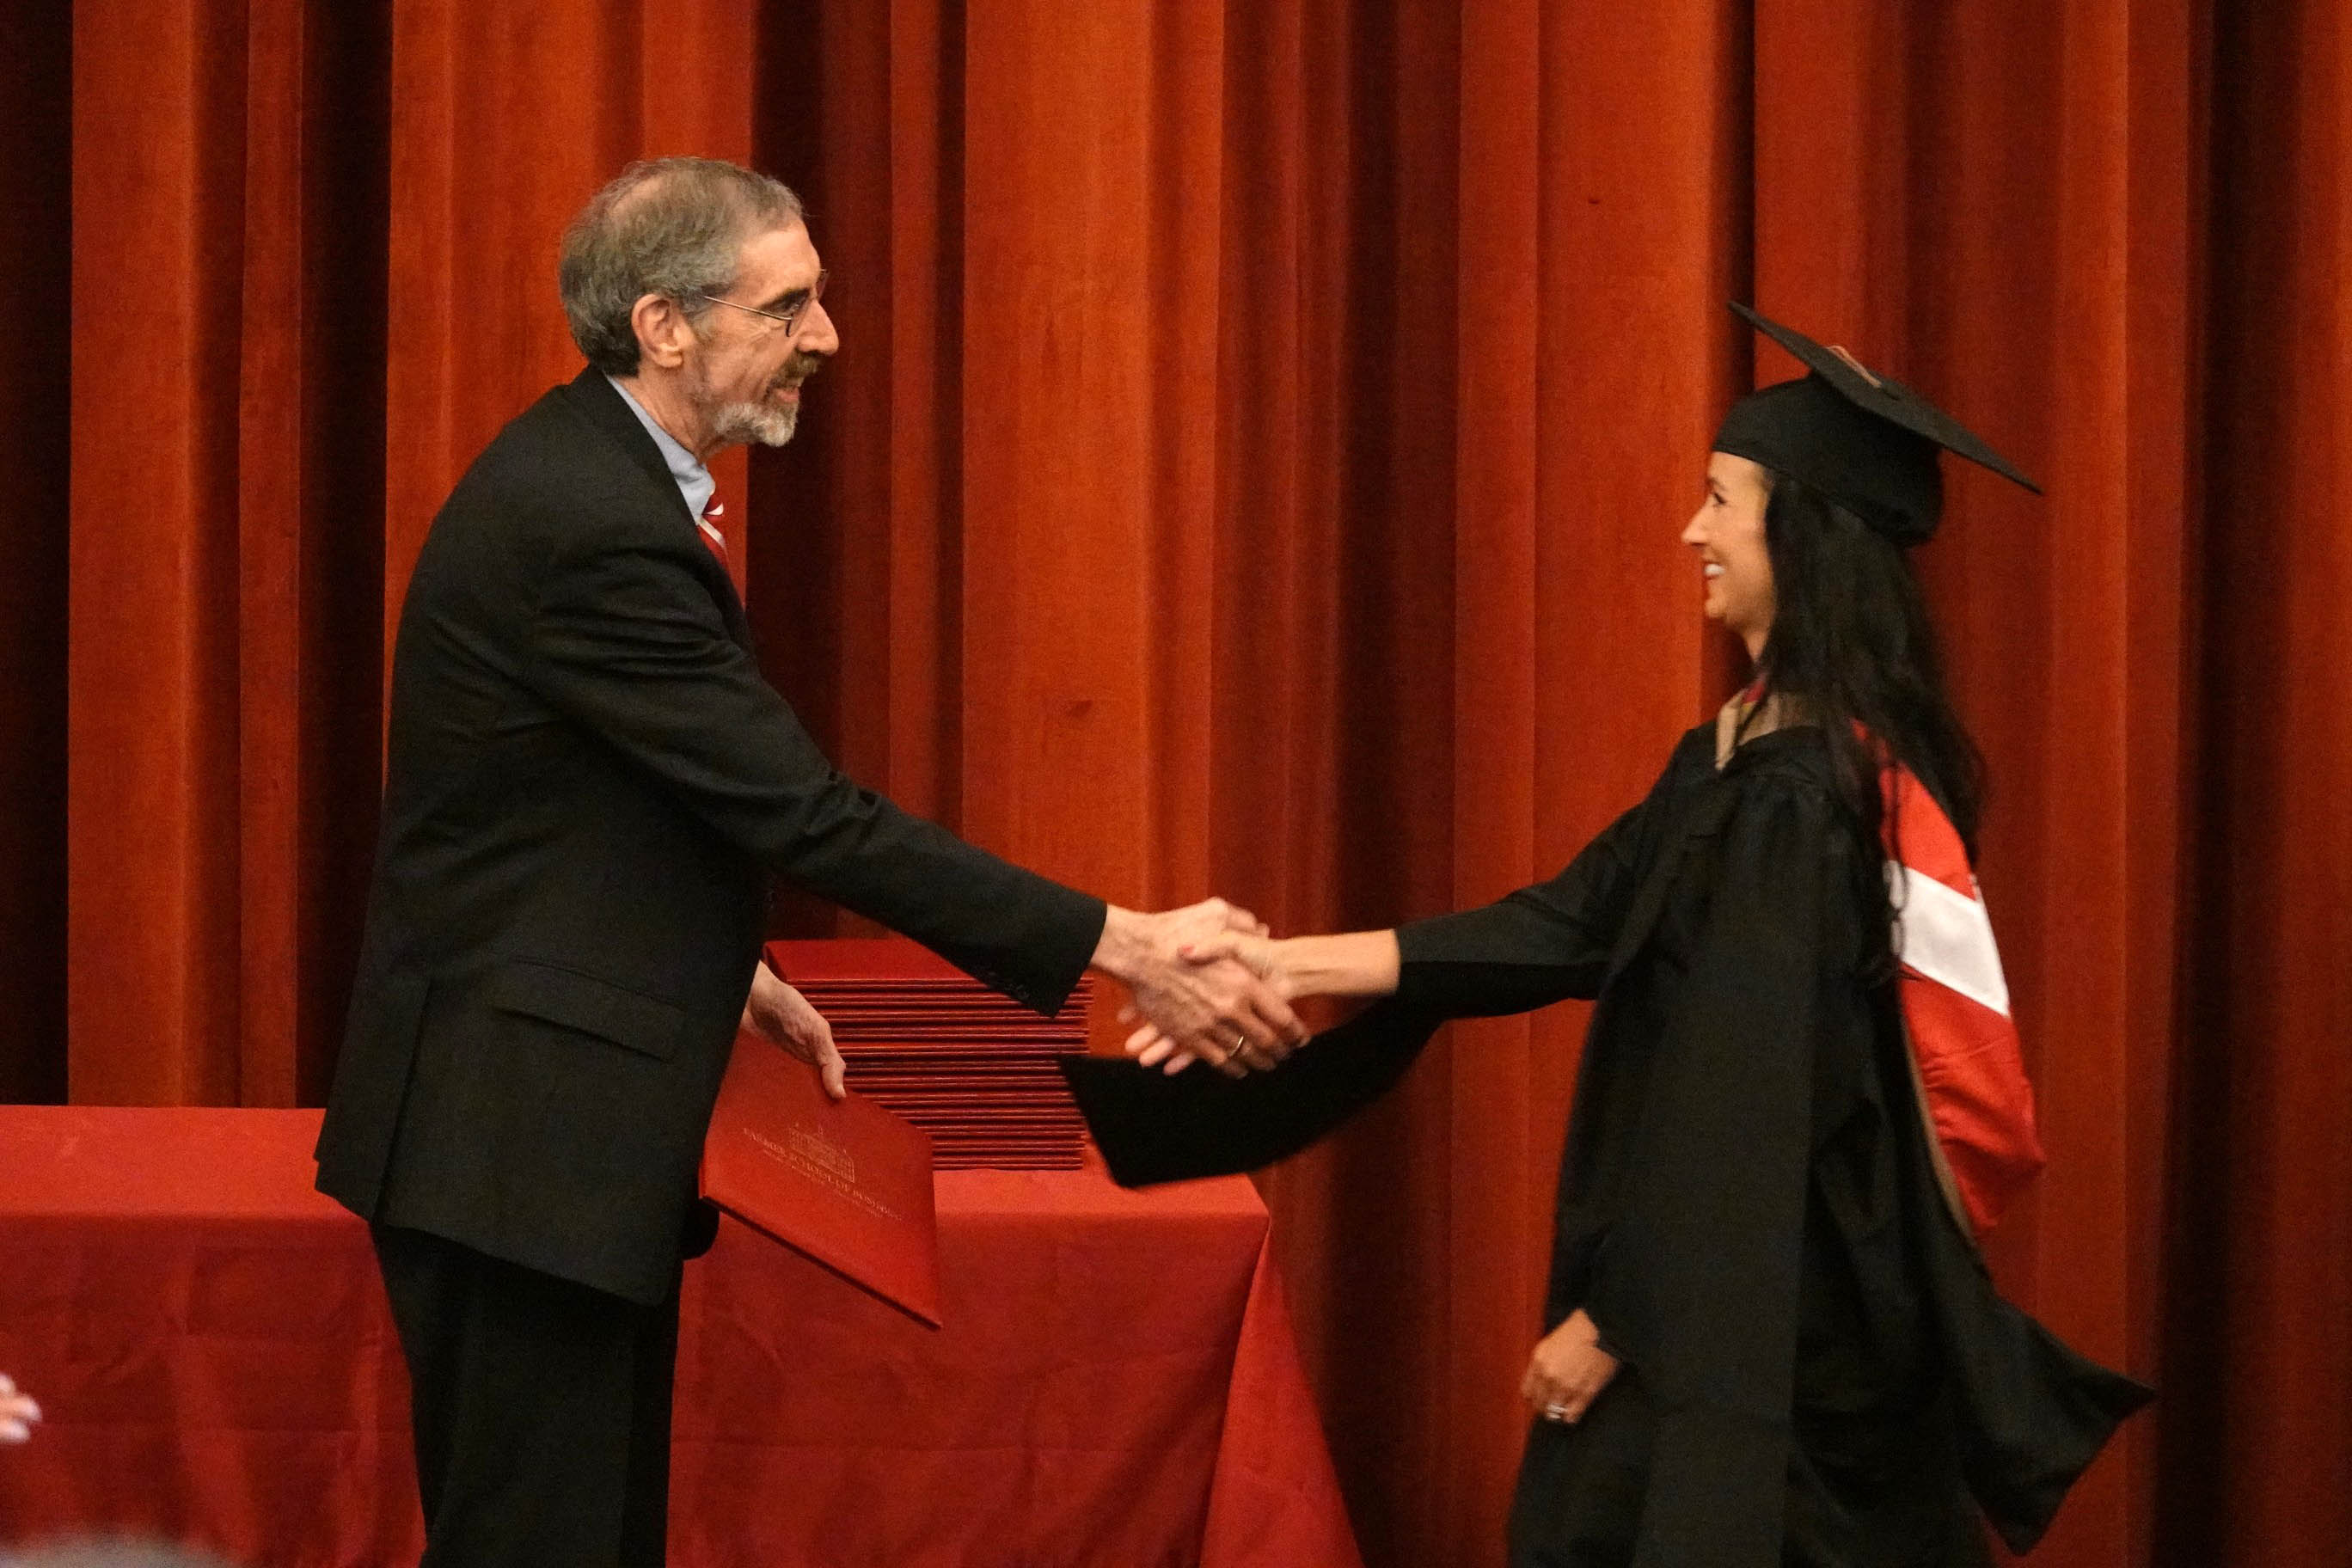 Graduate poses with Dean Marc Rubin